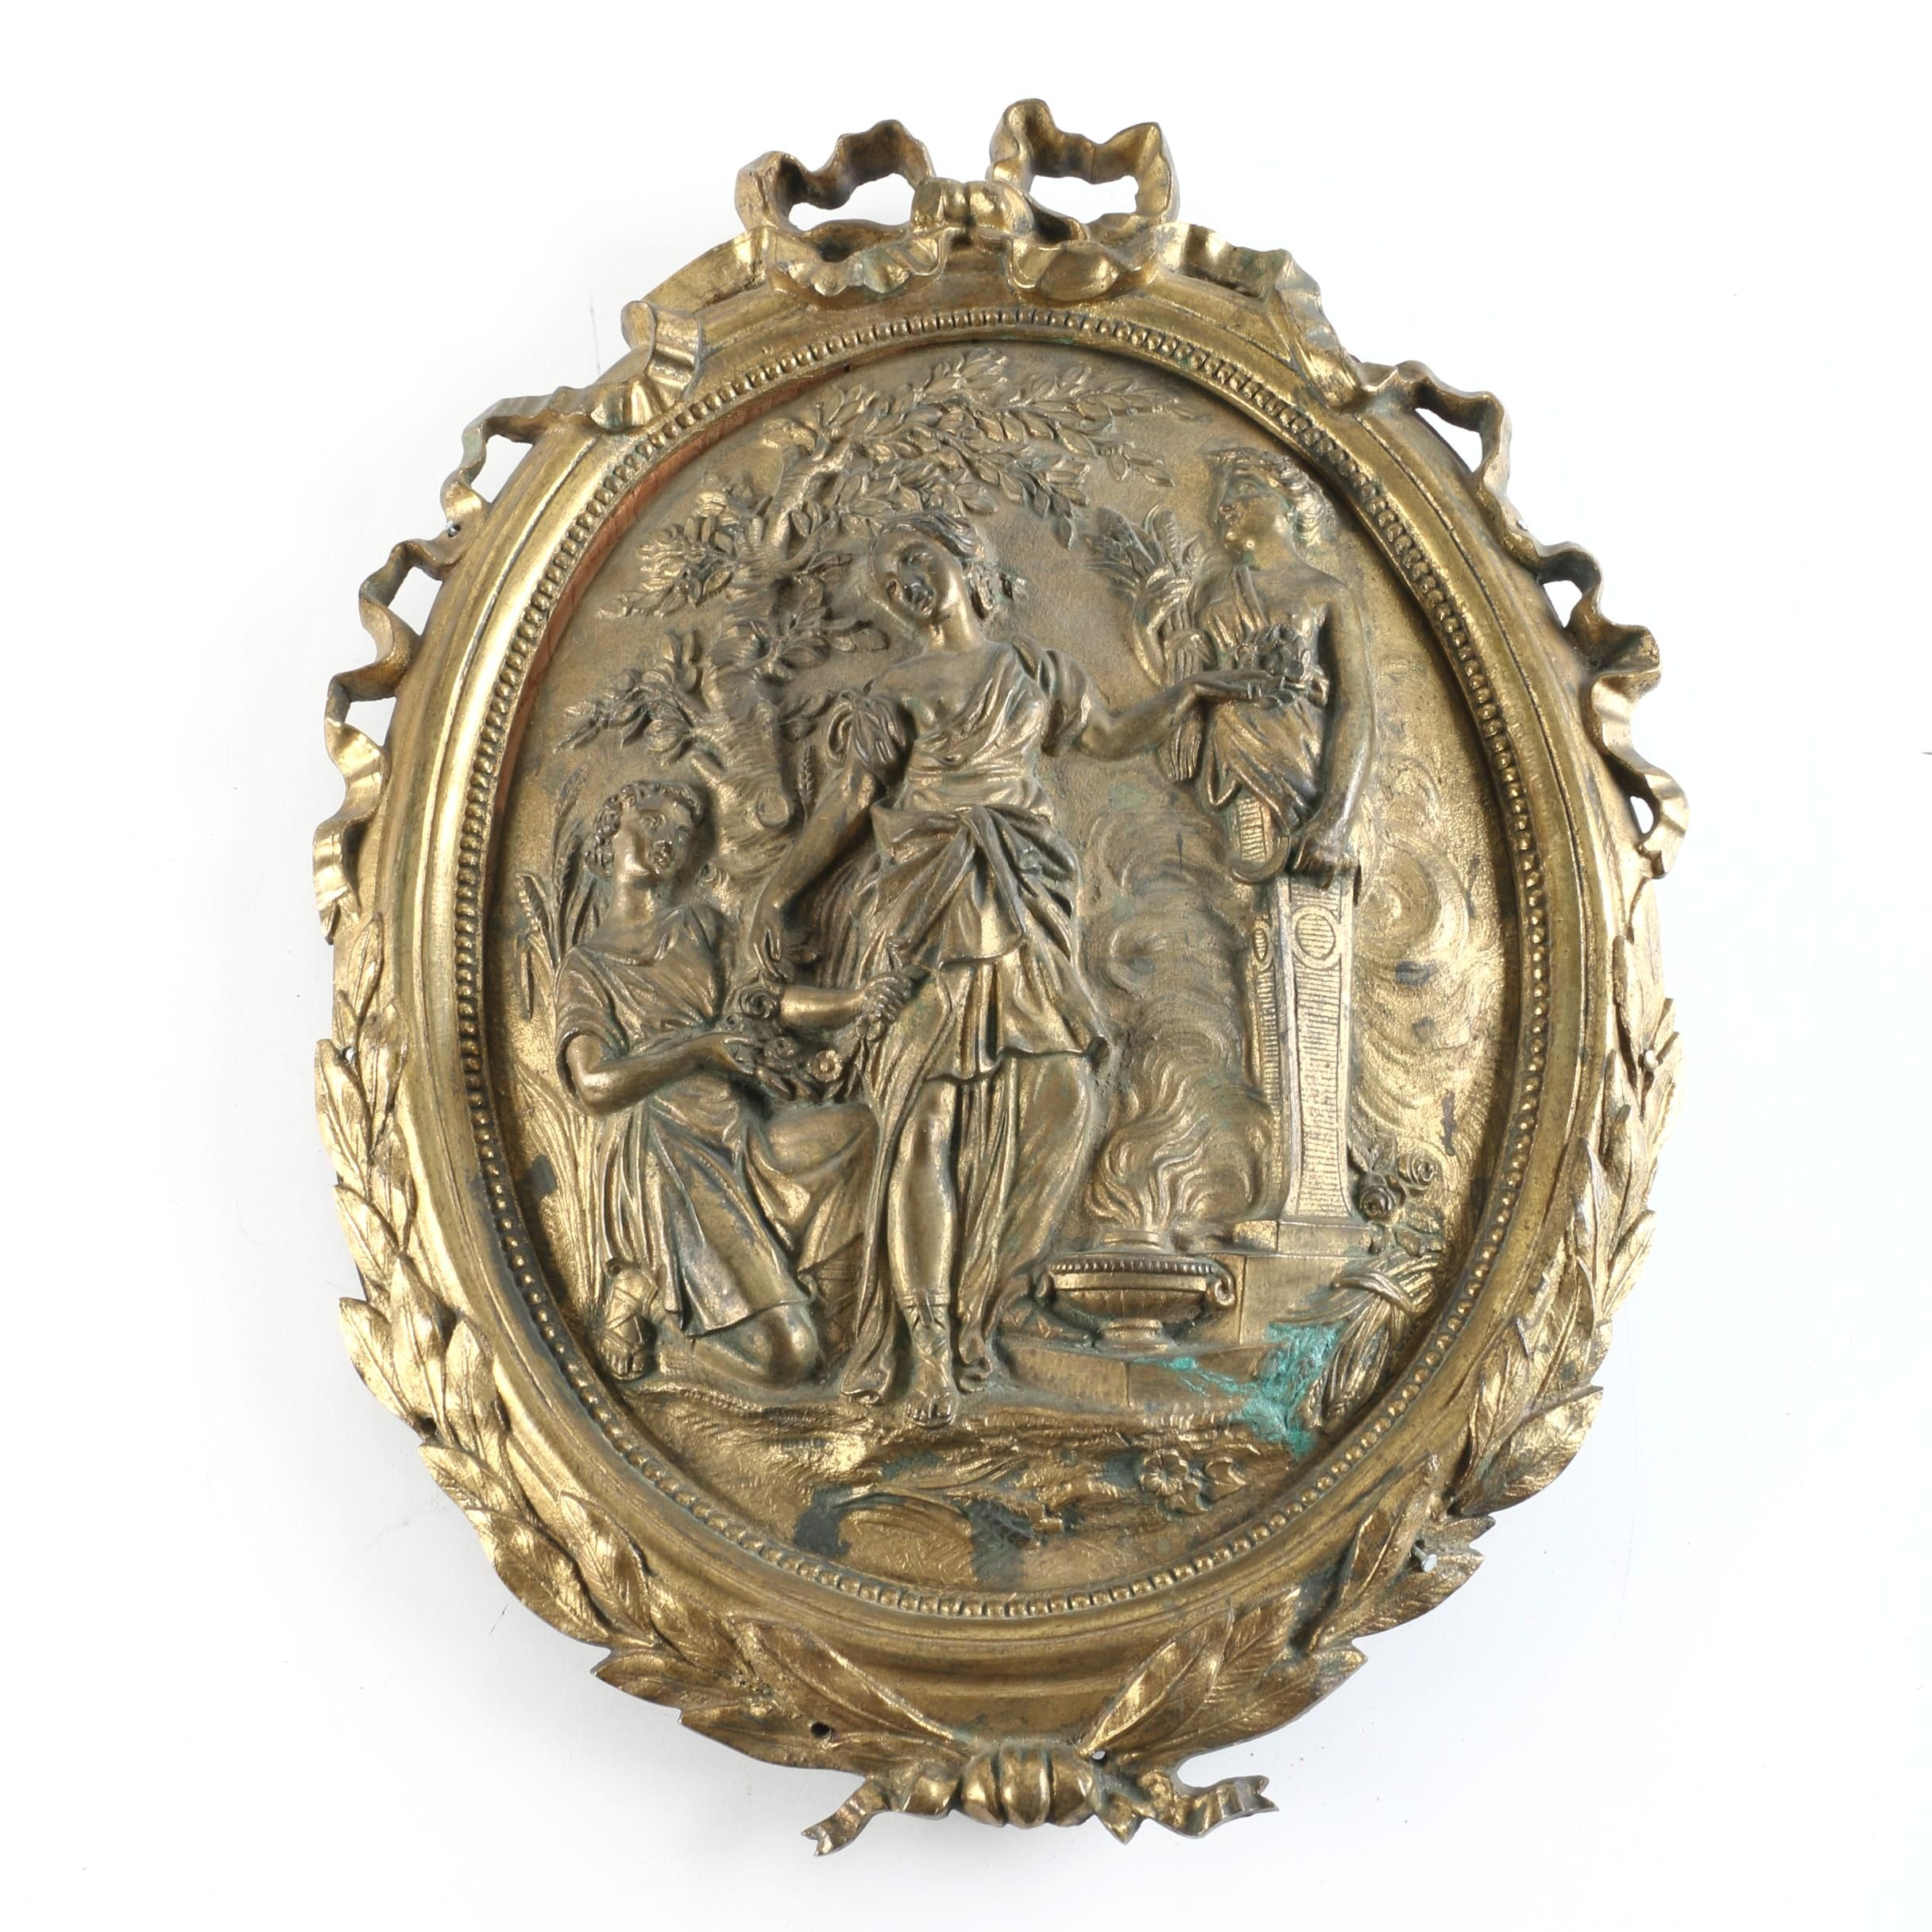 Brass Tone Wall Hanging in Relief of Classical Figures